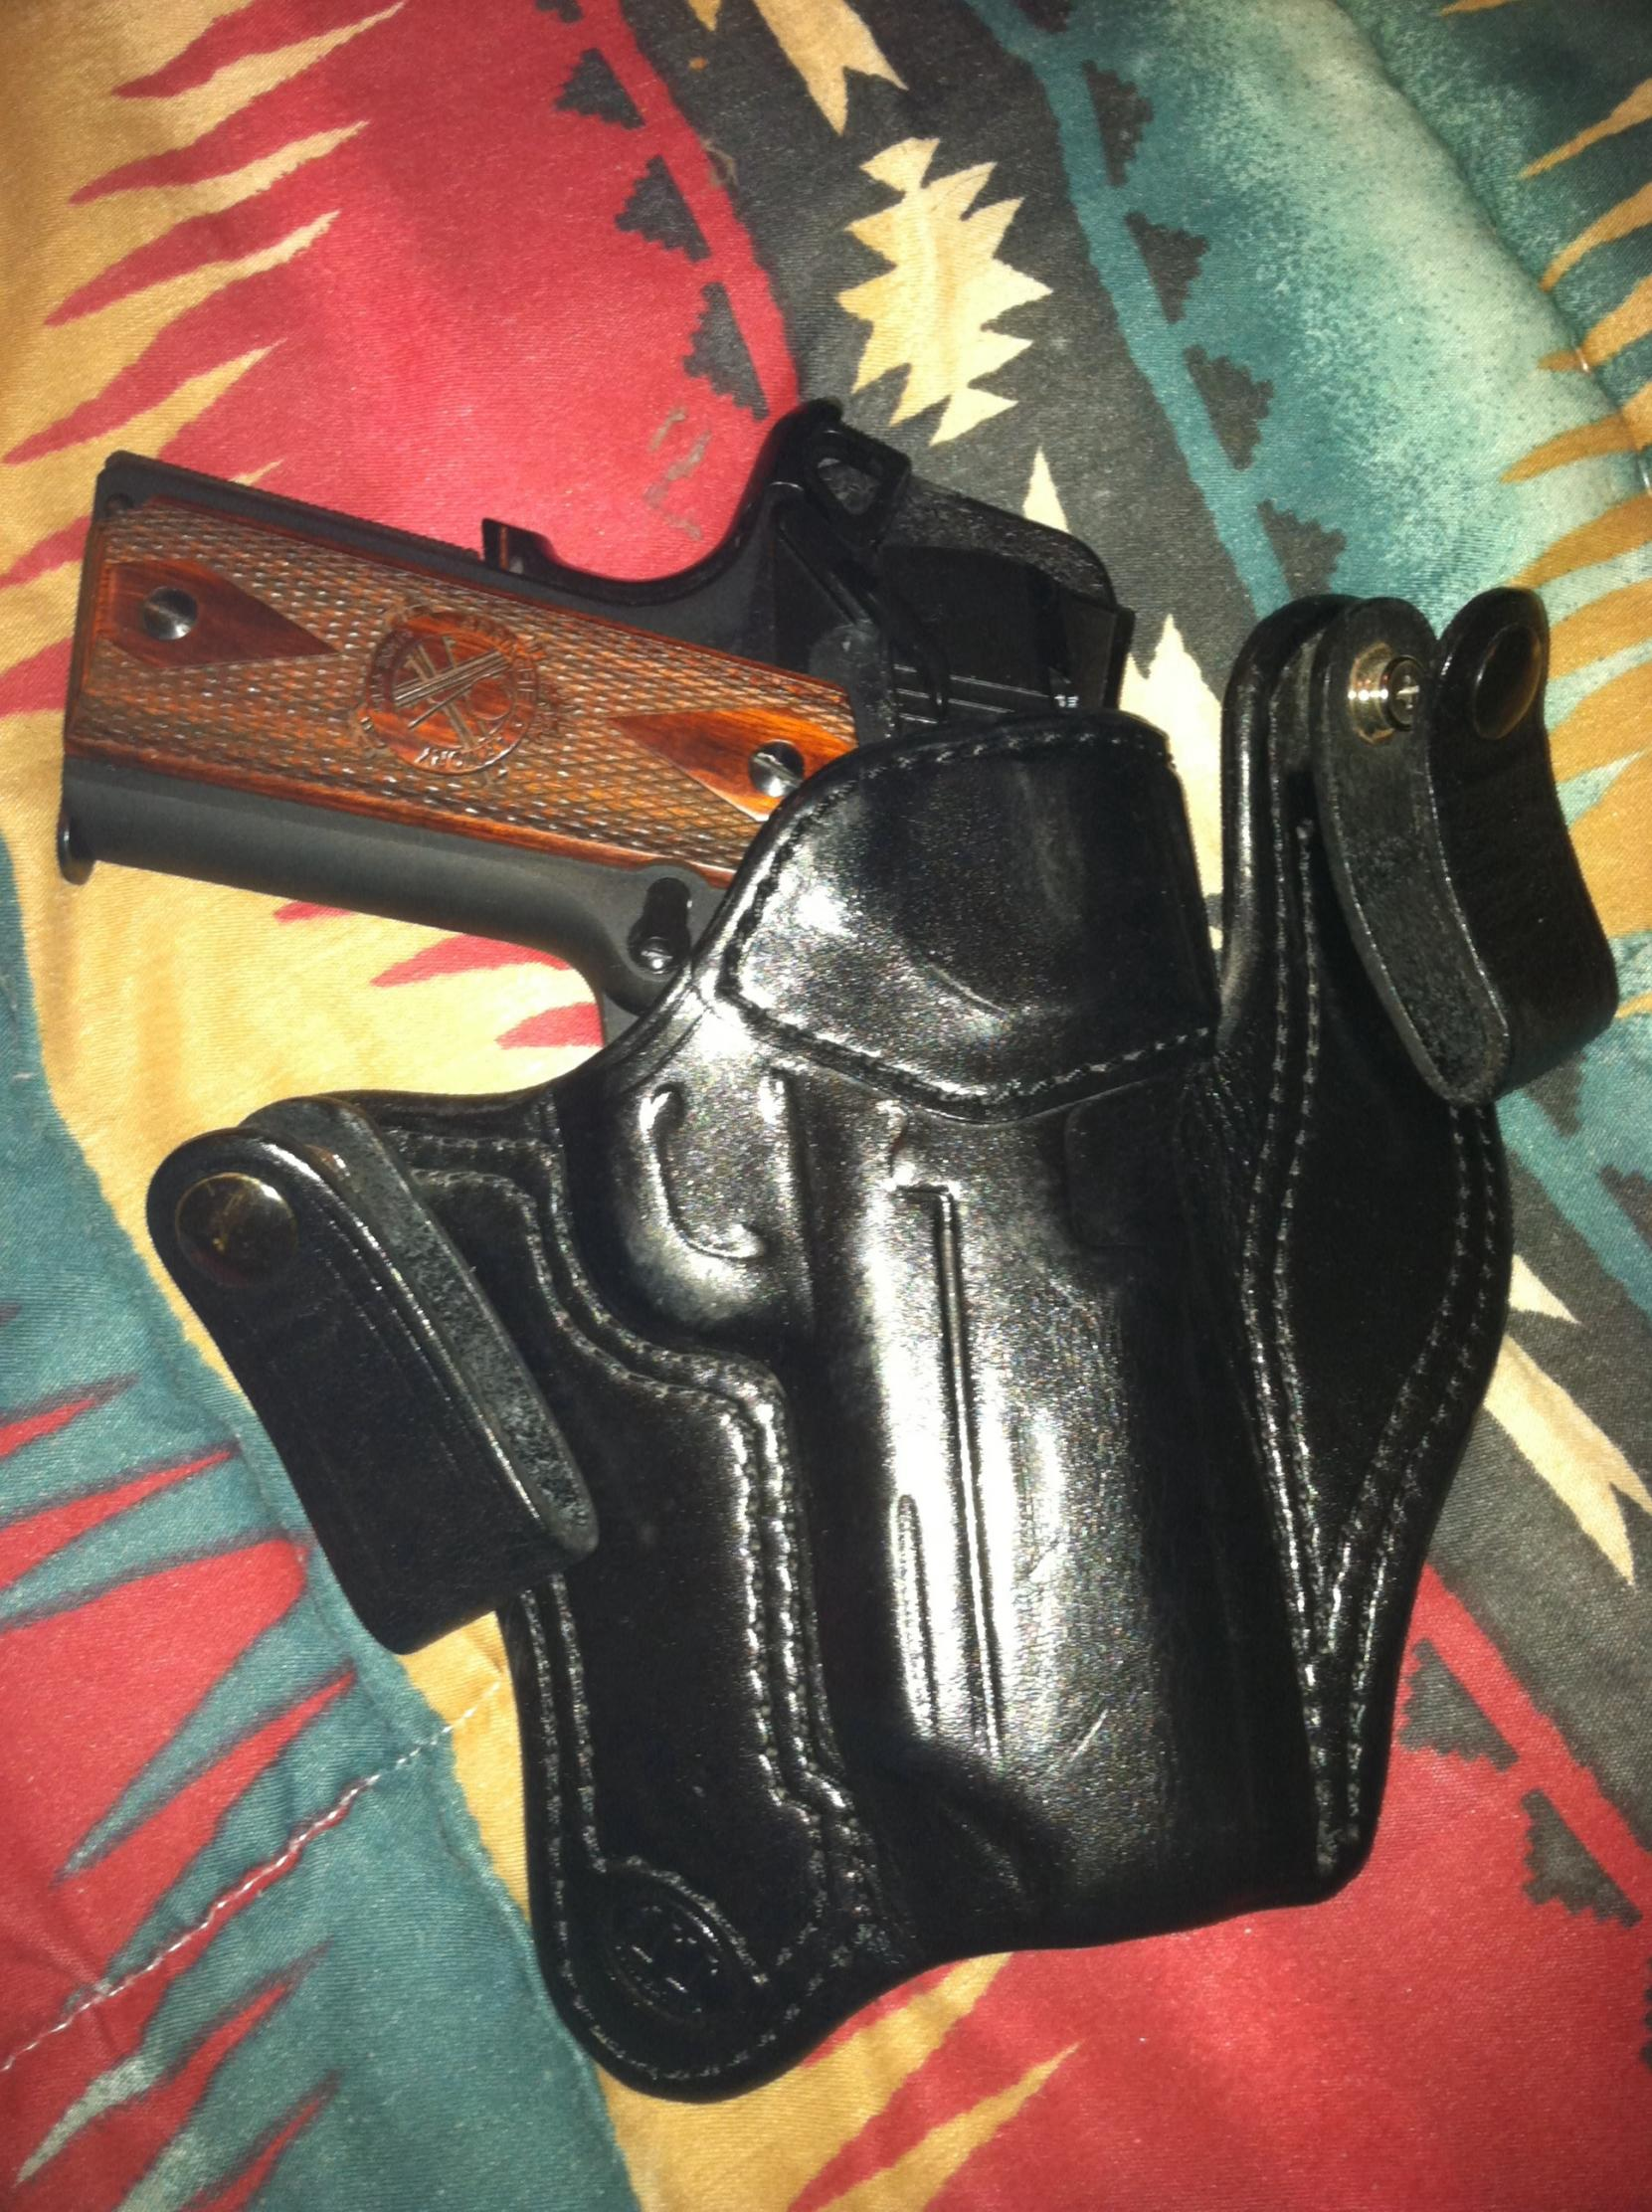 TT Gunleather Slim IWB Holster Arrived Today!-imageuploadedbytapatalk1315272145.147075.jpg